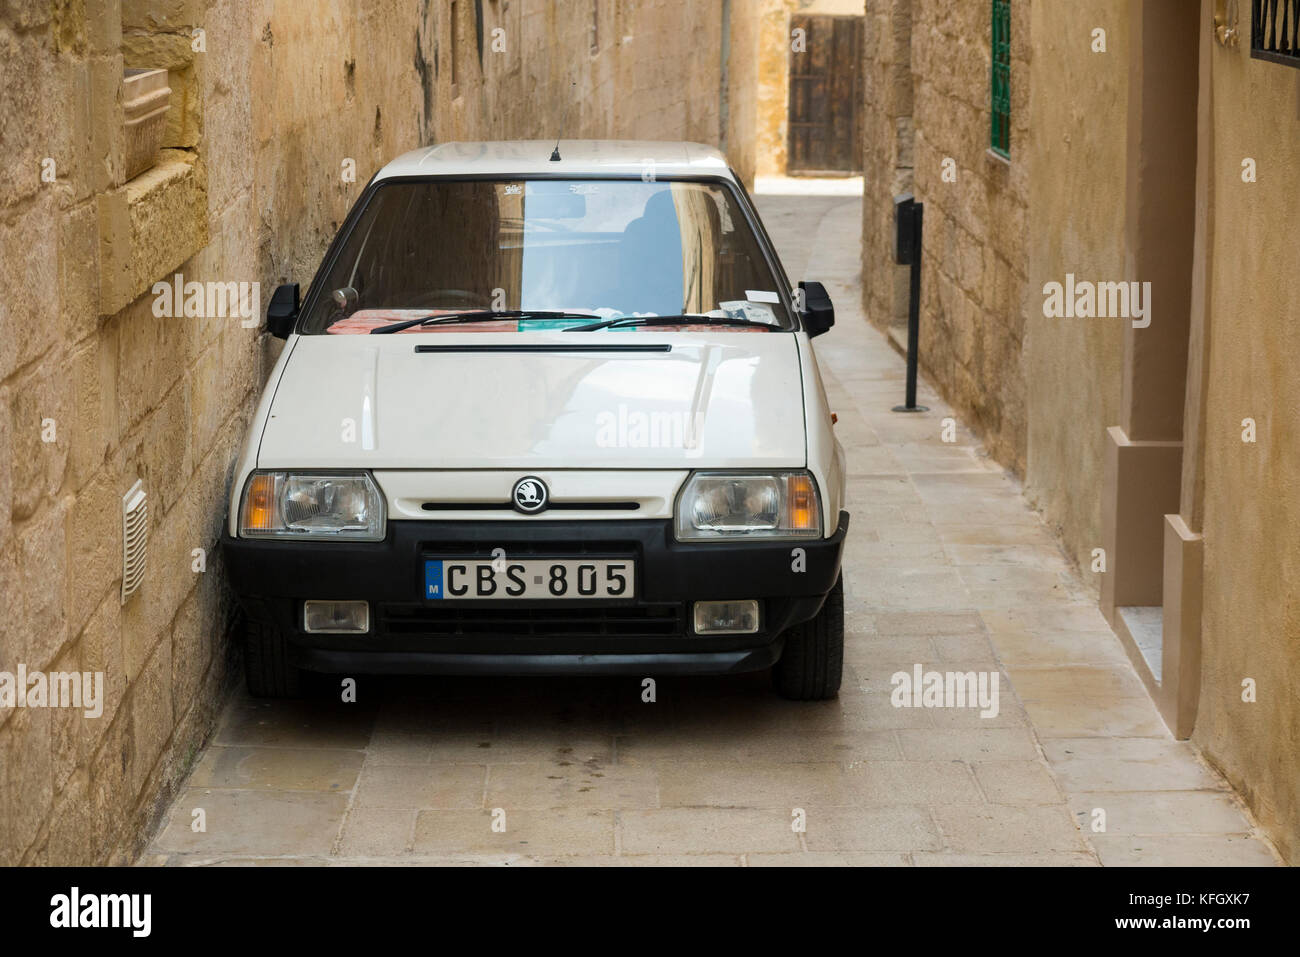 A Czechoslovakian Skoda car / vehicle parked too close to a wall in a narrow street / alley / road in the ancient - Stock Image